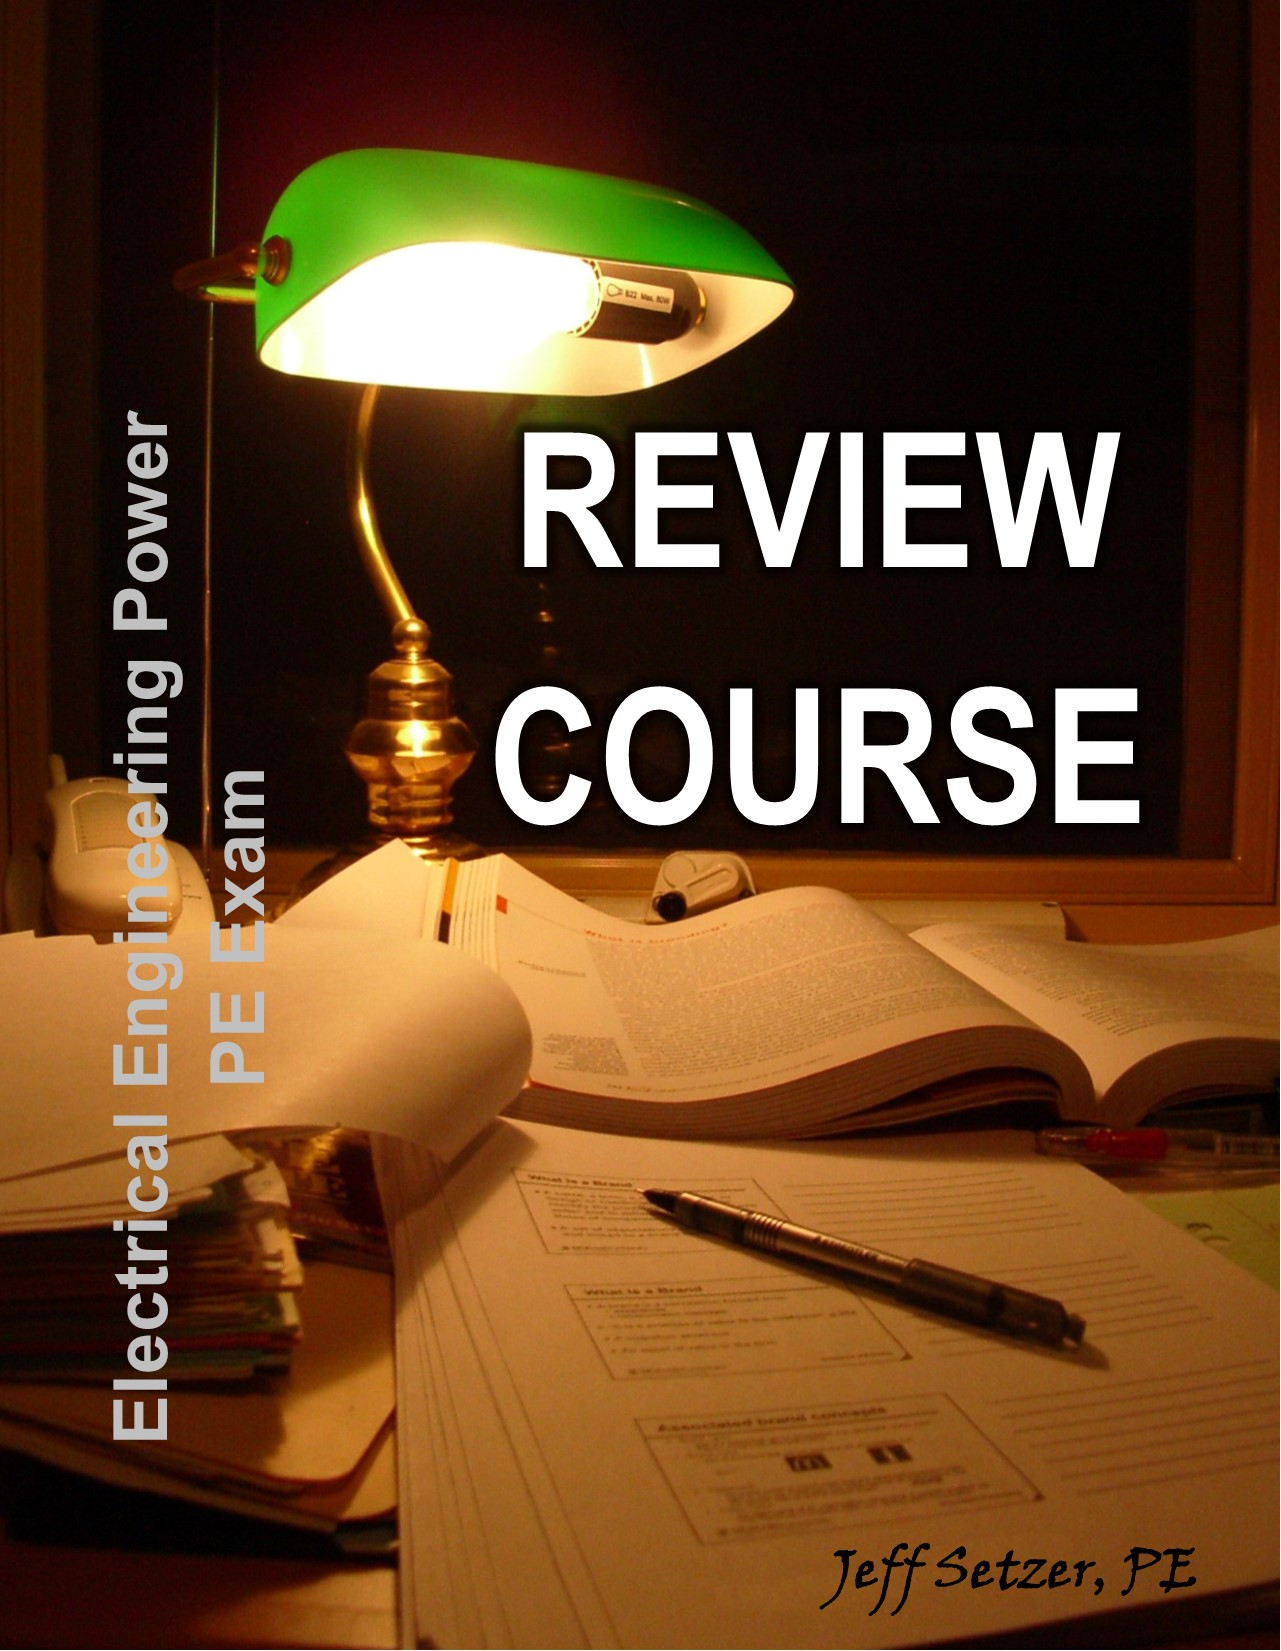 EEP Review Course